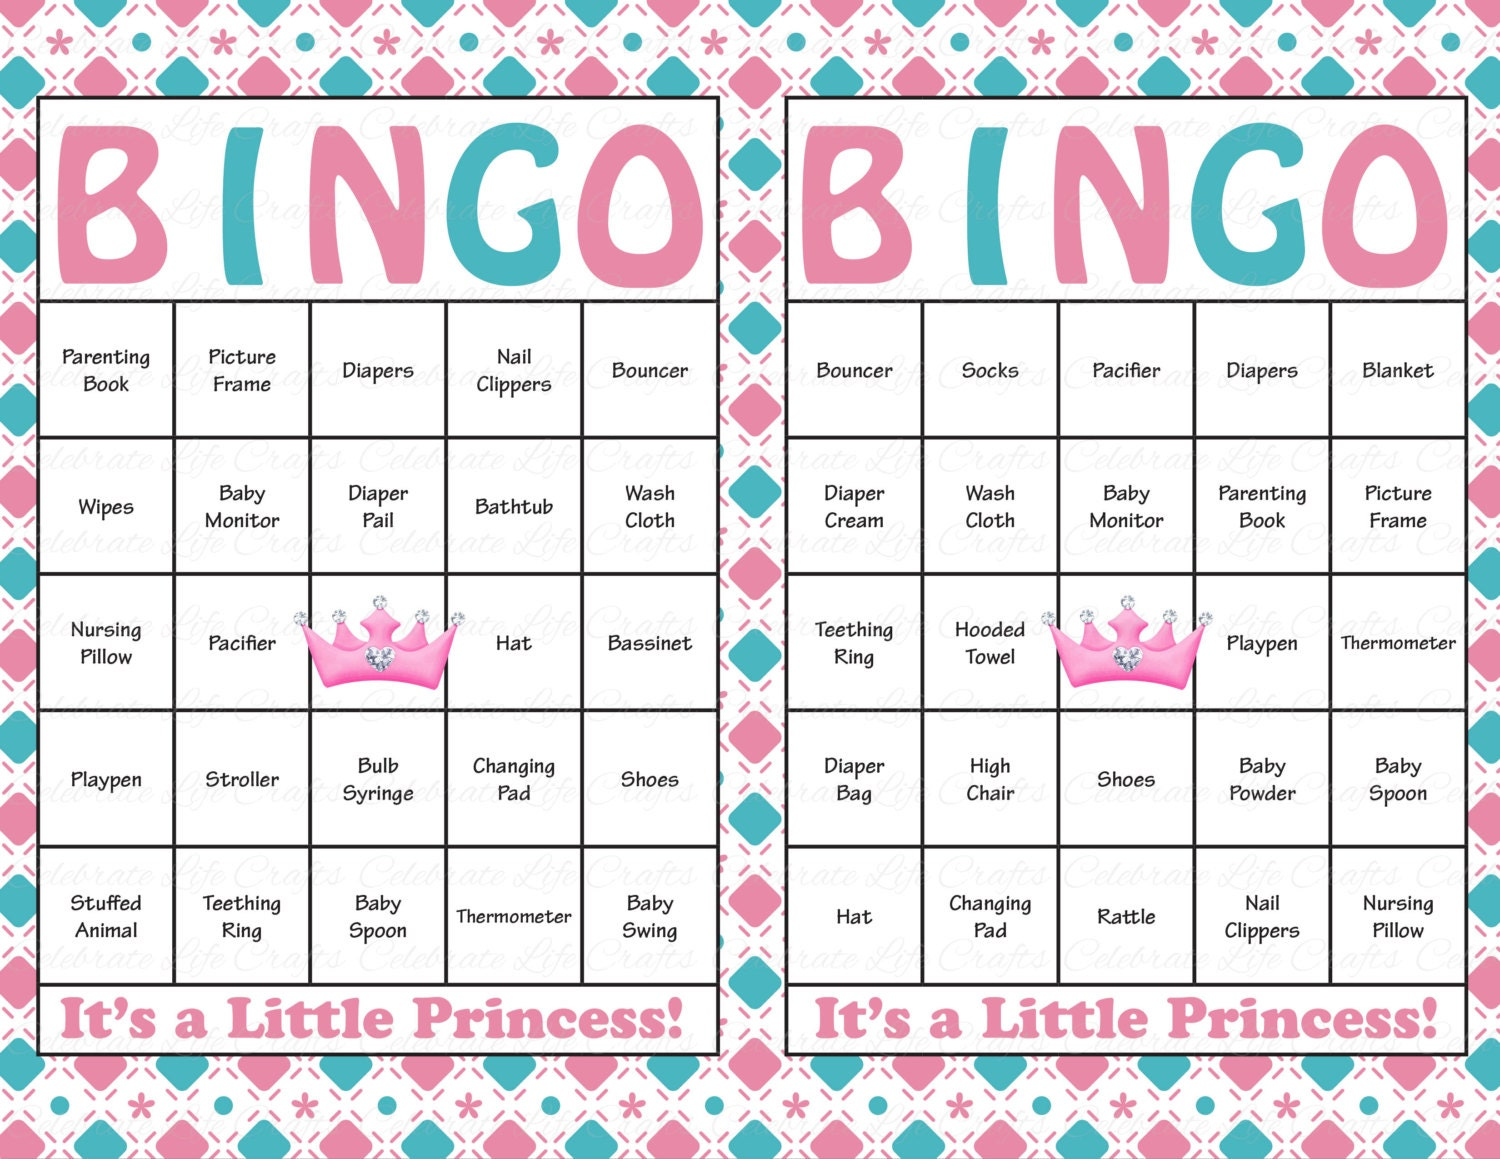 This is a picture of Vibrant Printable Baby Shower Bingo Cards